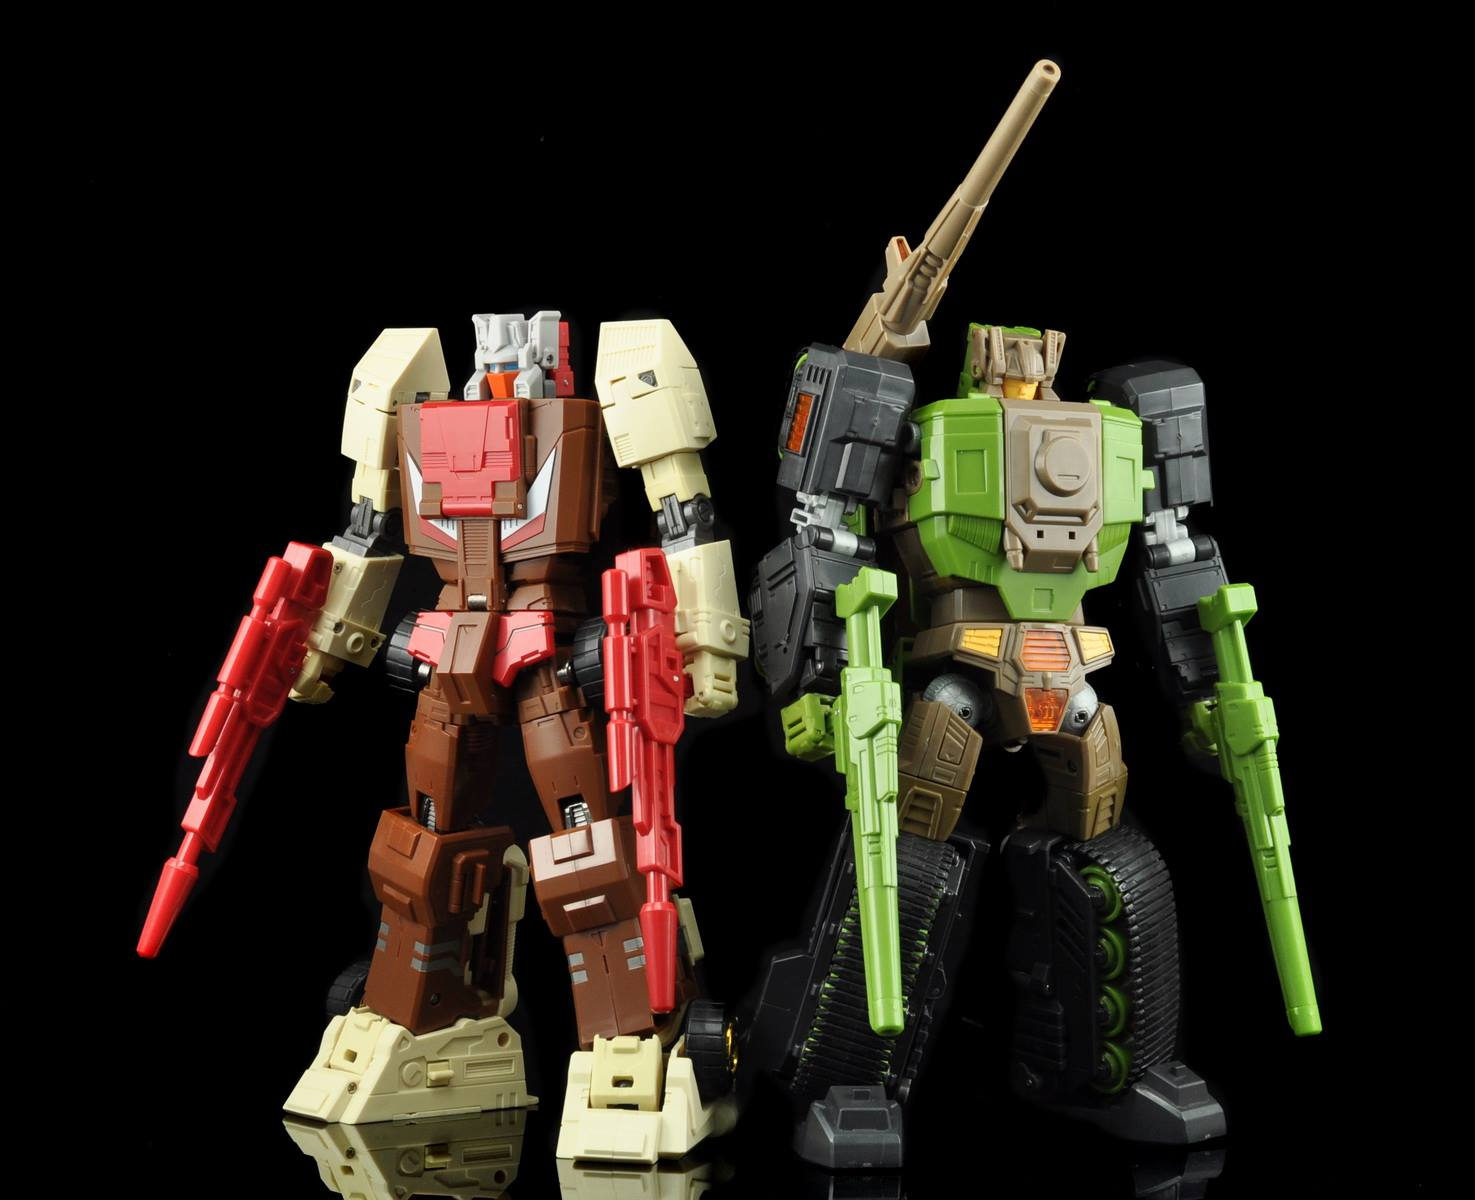 [Maketoys] Produit Tiers - Jouets MTRM - aka Headmasters et Targetmasters - Page 2 Iron-Will-06